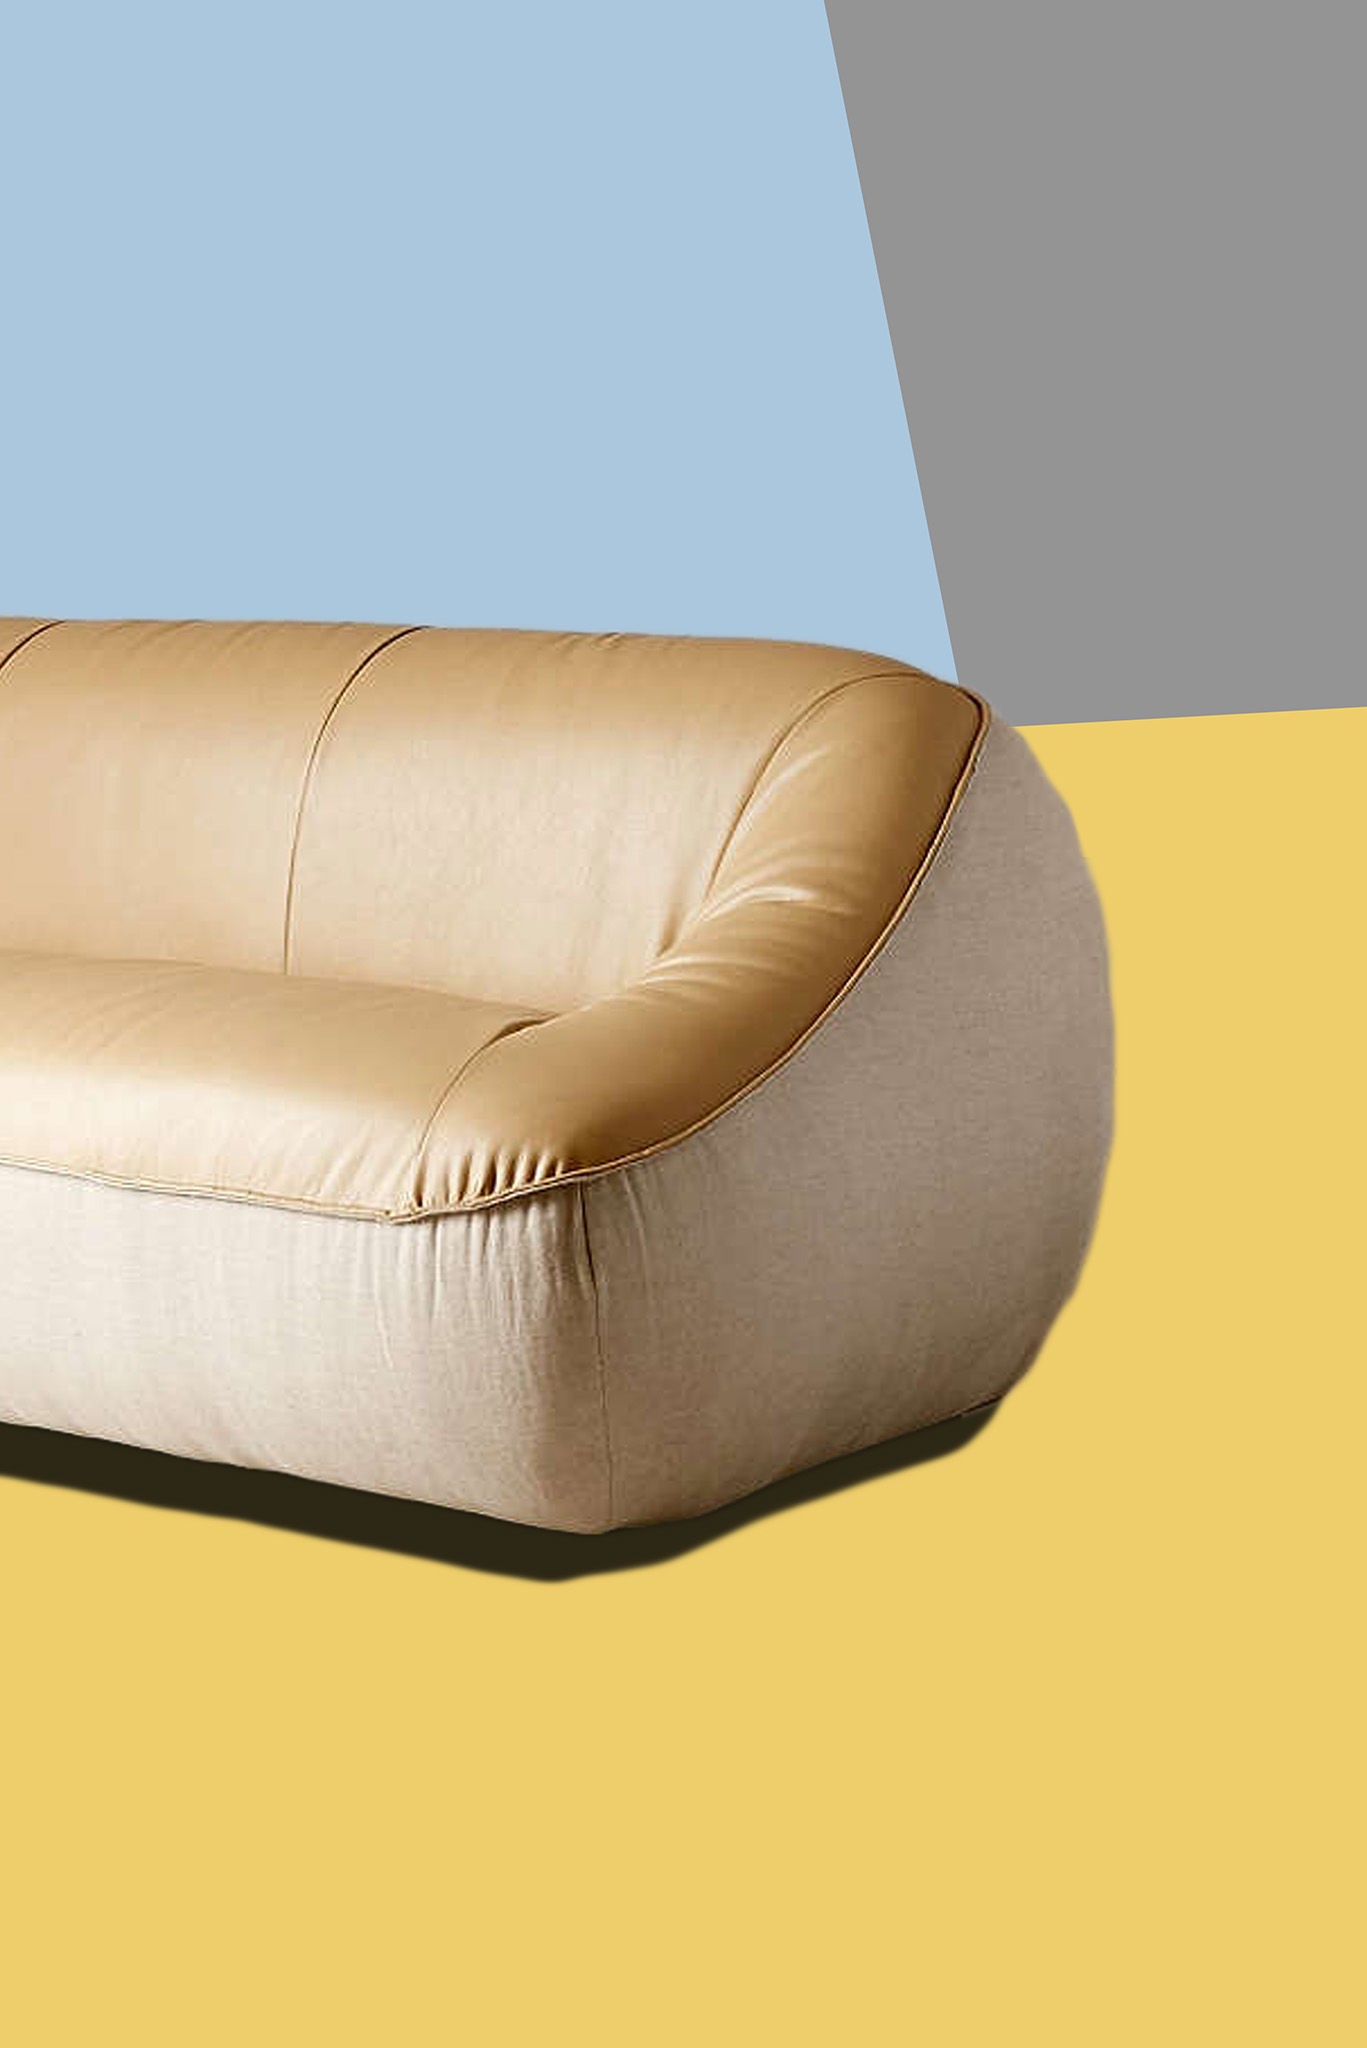 stylish curved leather sofa construction-Incredible Curved Leather sofa Wallpaper